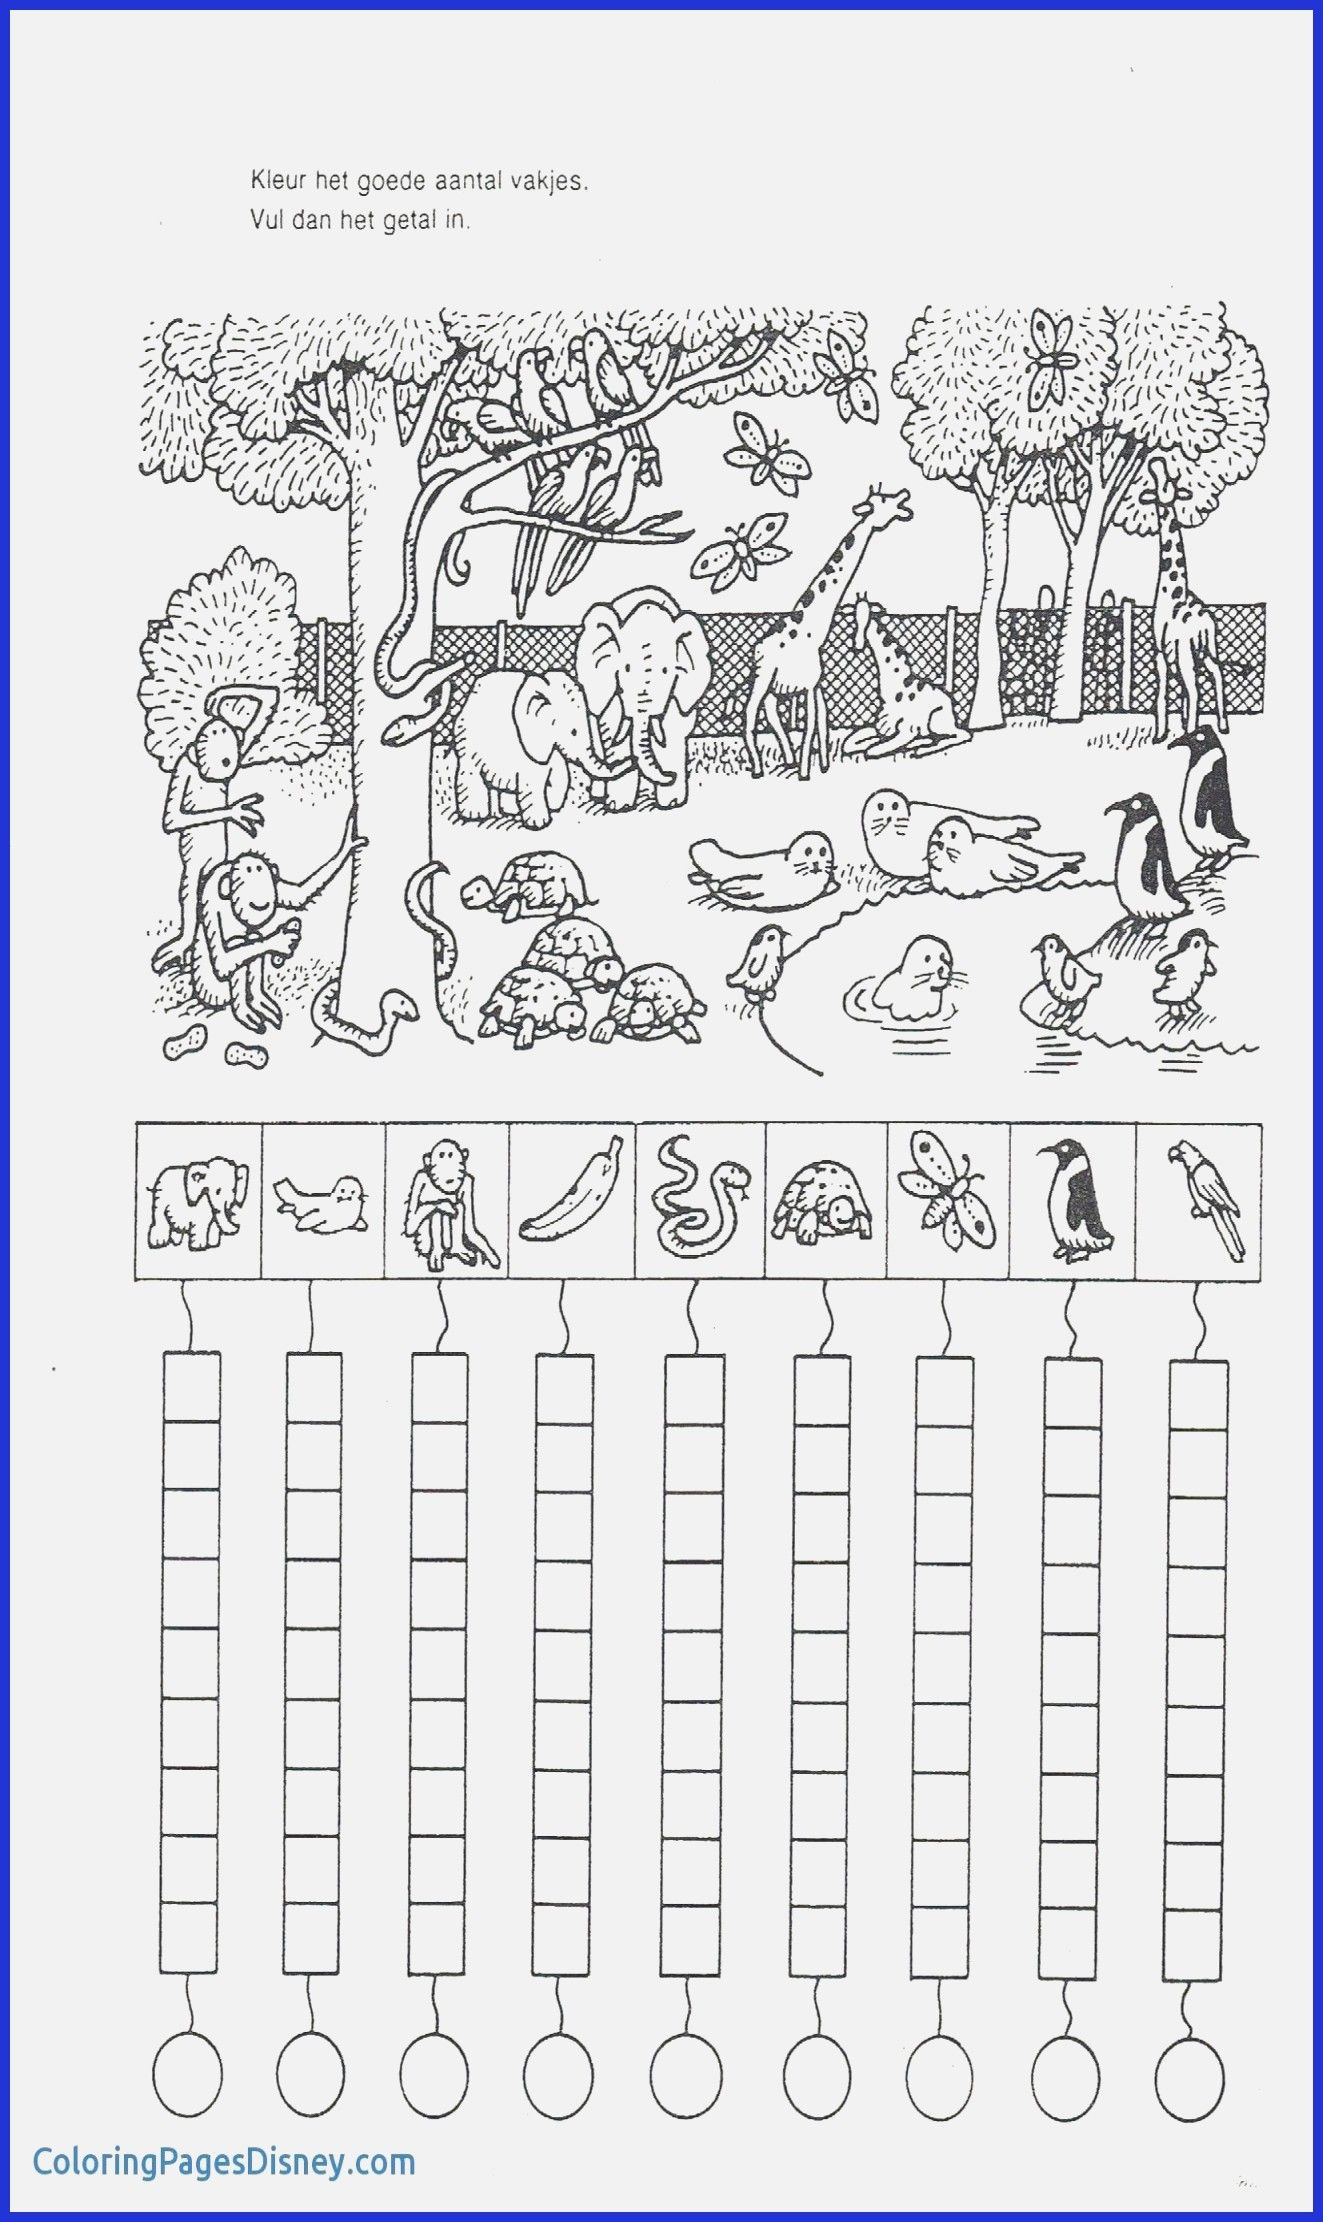 Worksheets For Preschool For Download